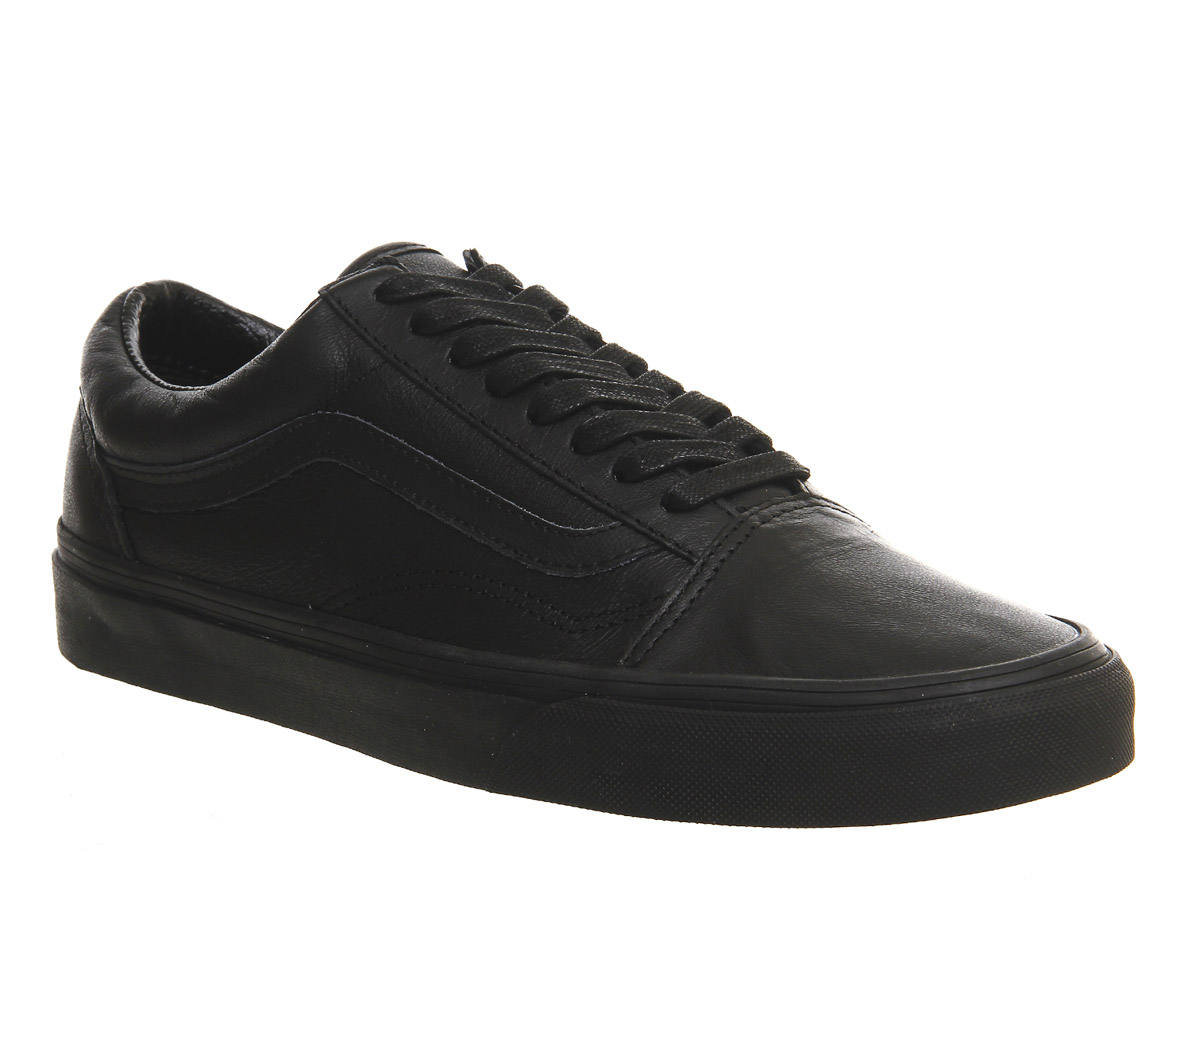 vans old skool black leather